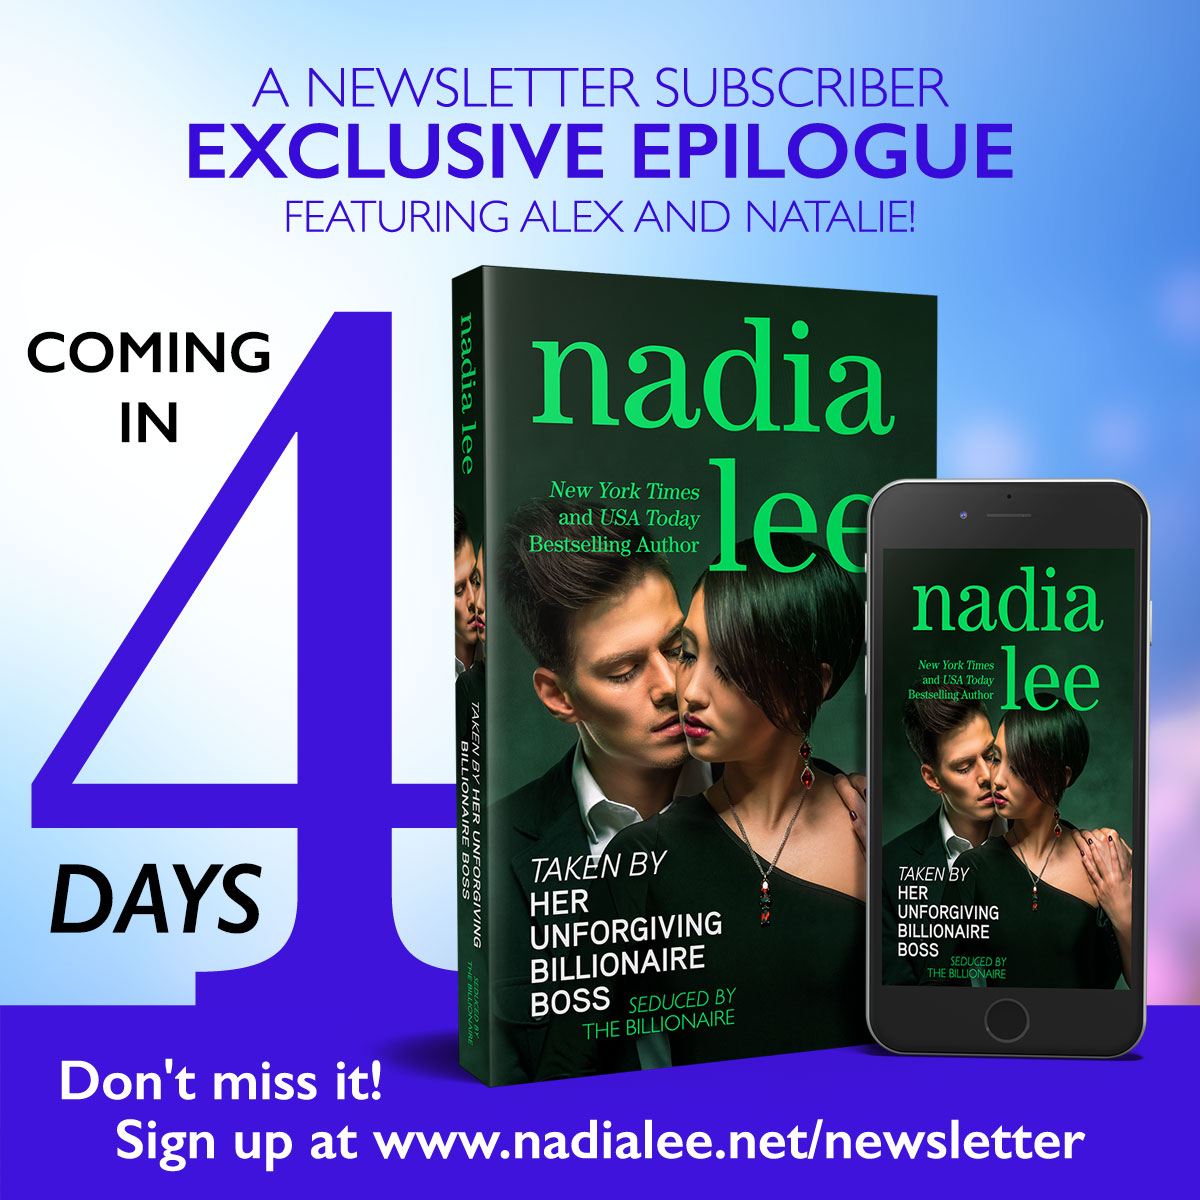 Exclusive Epilogue in 4 Days!